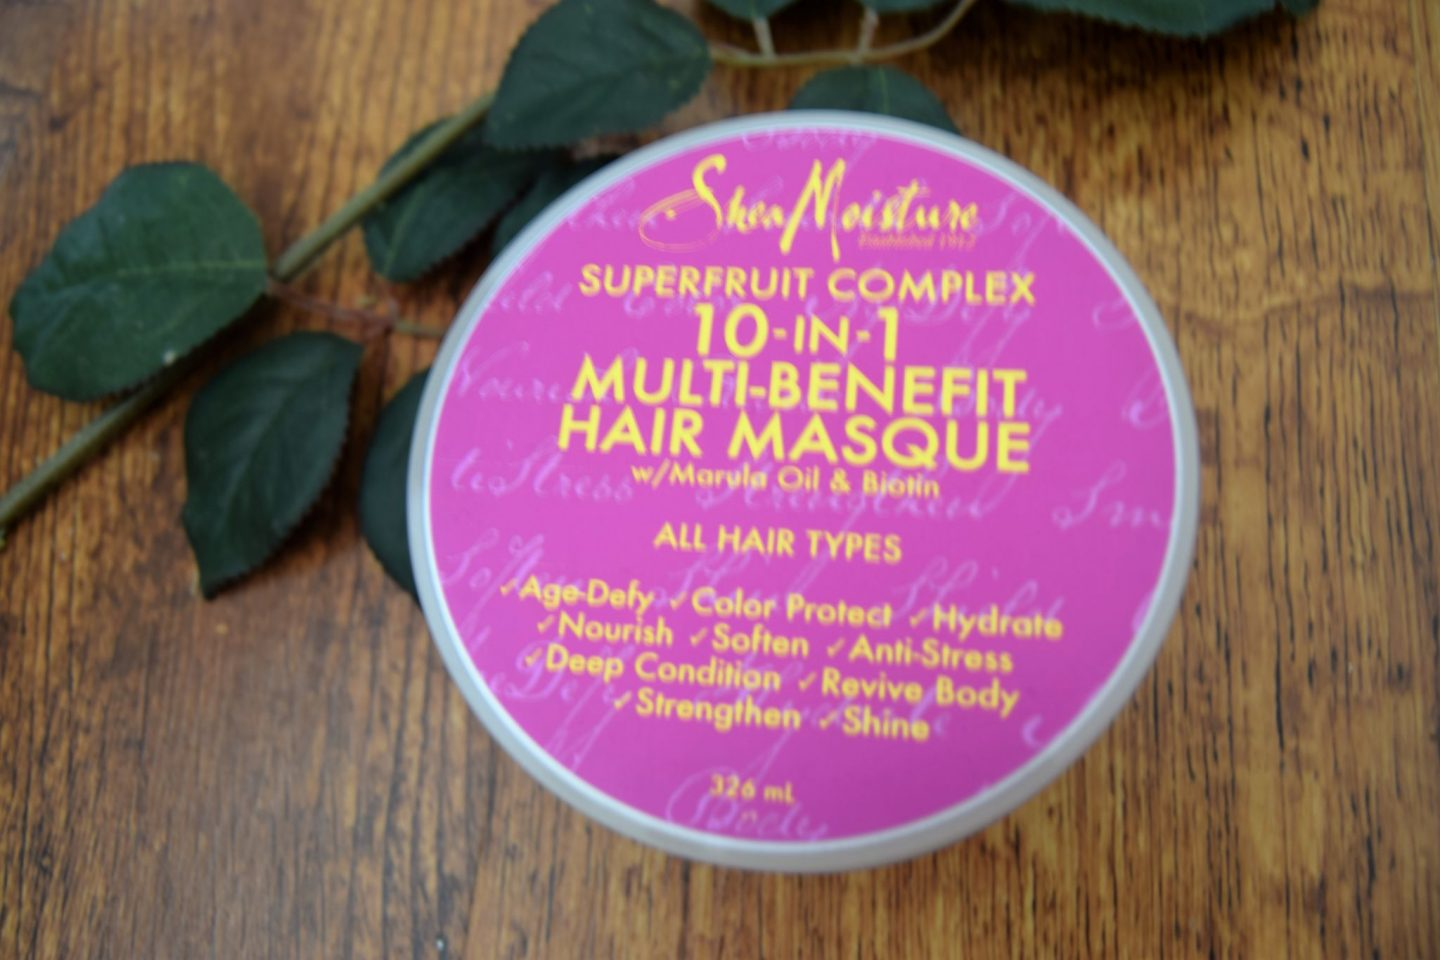 DSC 3264 1440x960 - Shea Moisture Superfruit Mask 10 in 1